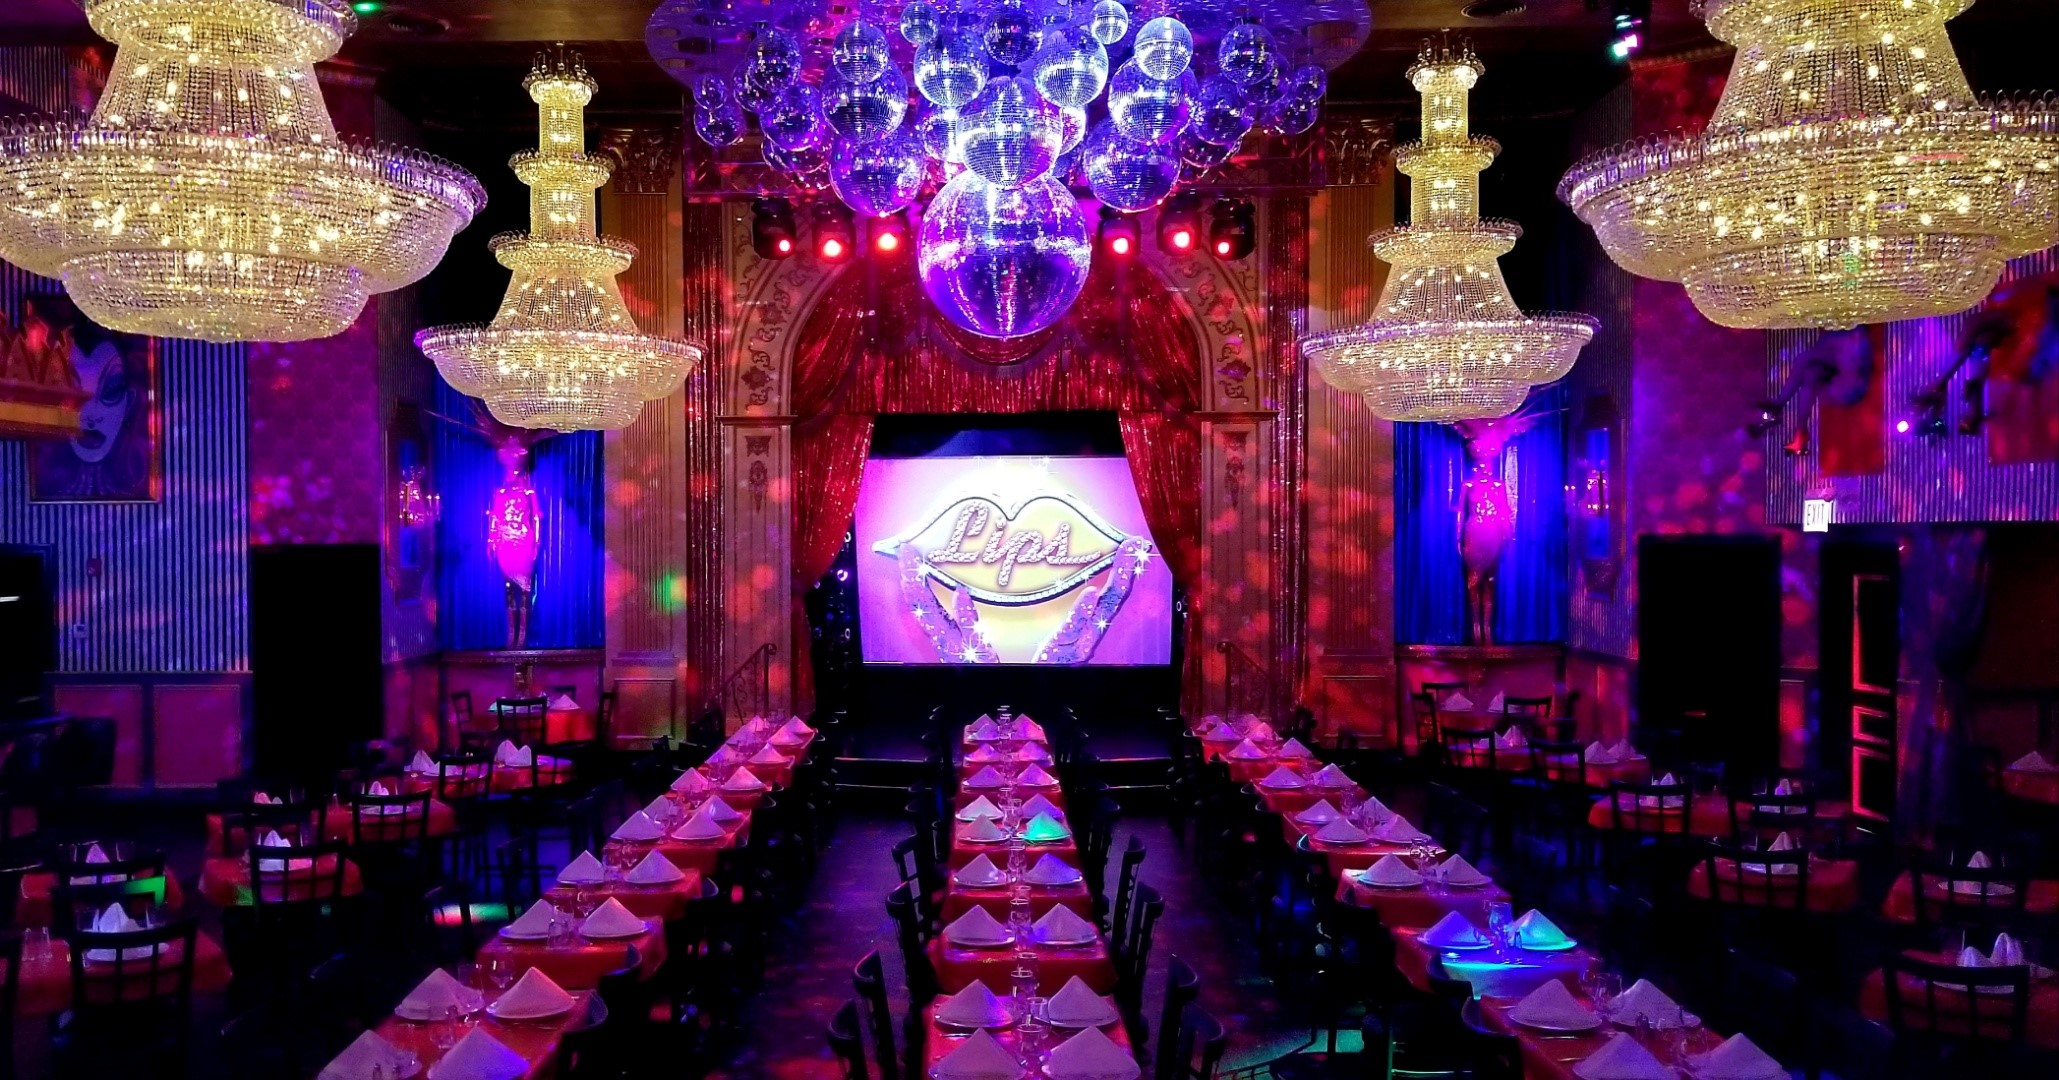 Brightly colored tables and chairs fill a large dark room with a stage in the rear.